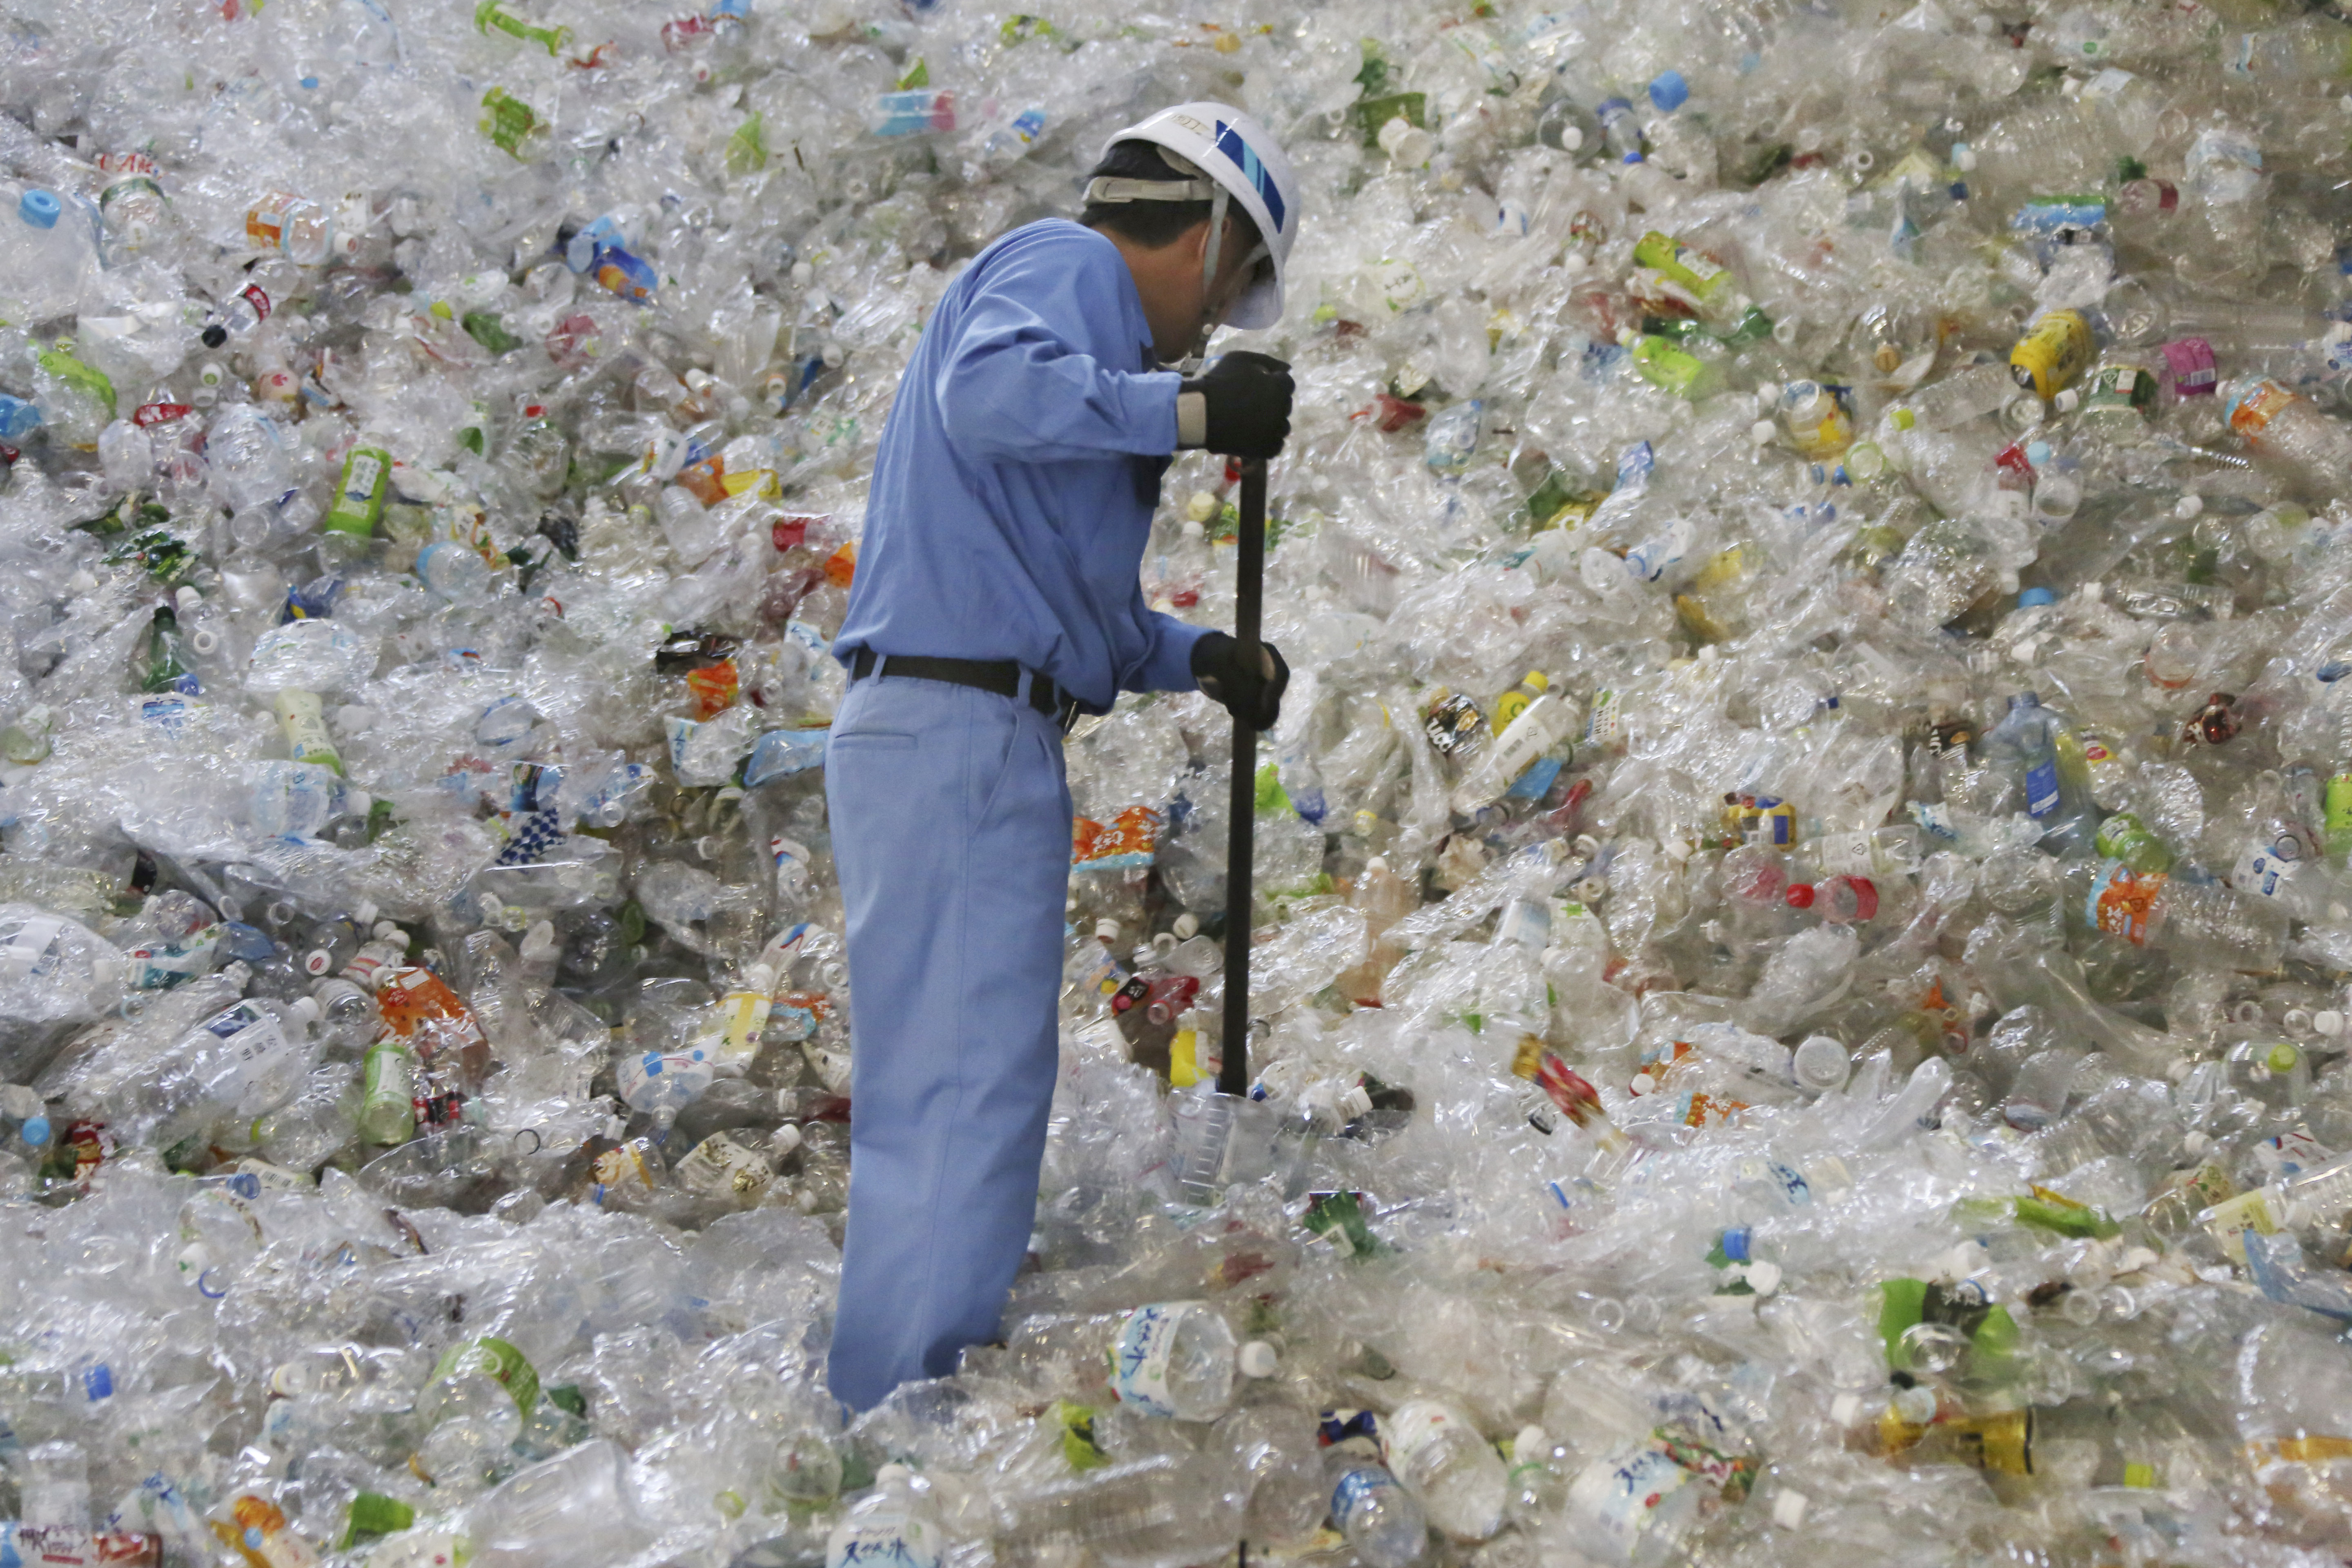 A worker at a Japanese recycling plant sorts out plastic bottles.